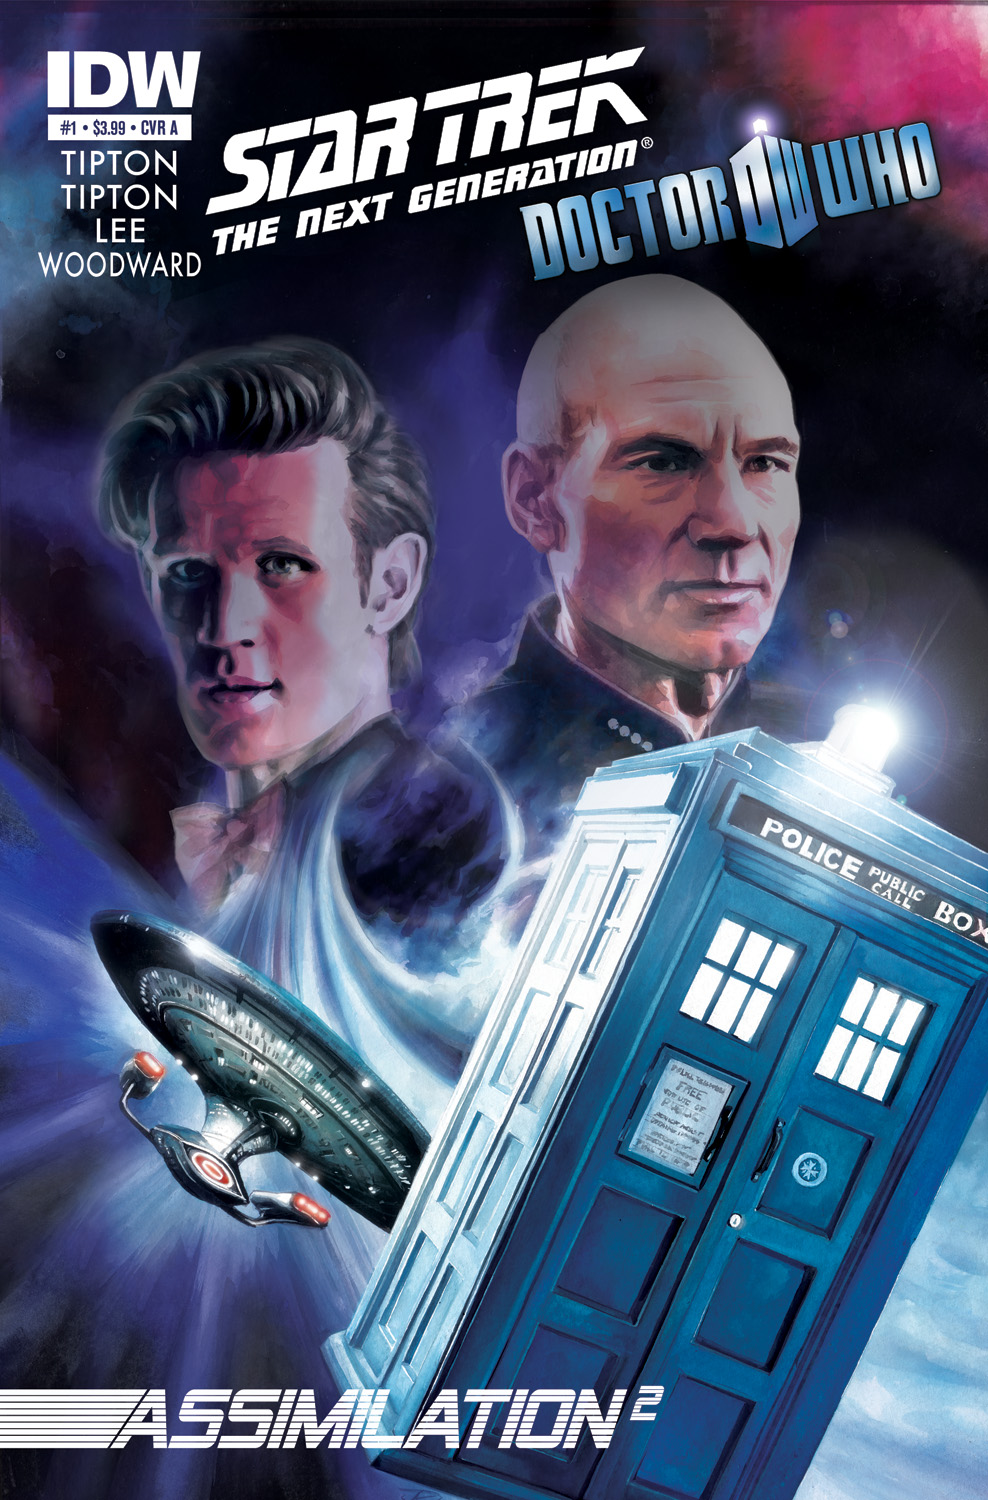 [Doctor Who/Star Trek Crossover Image]